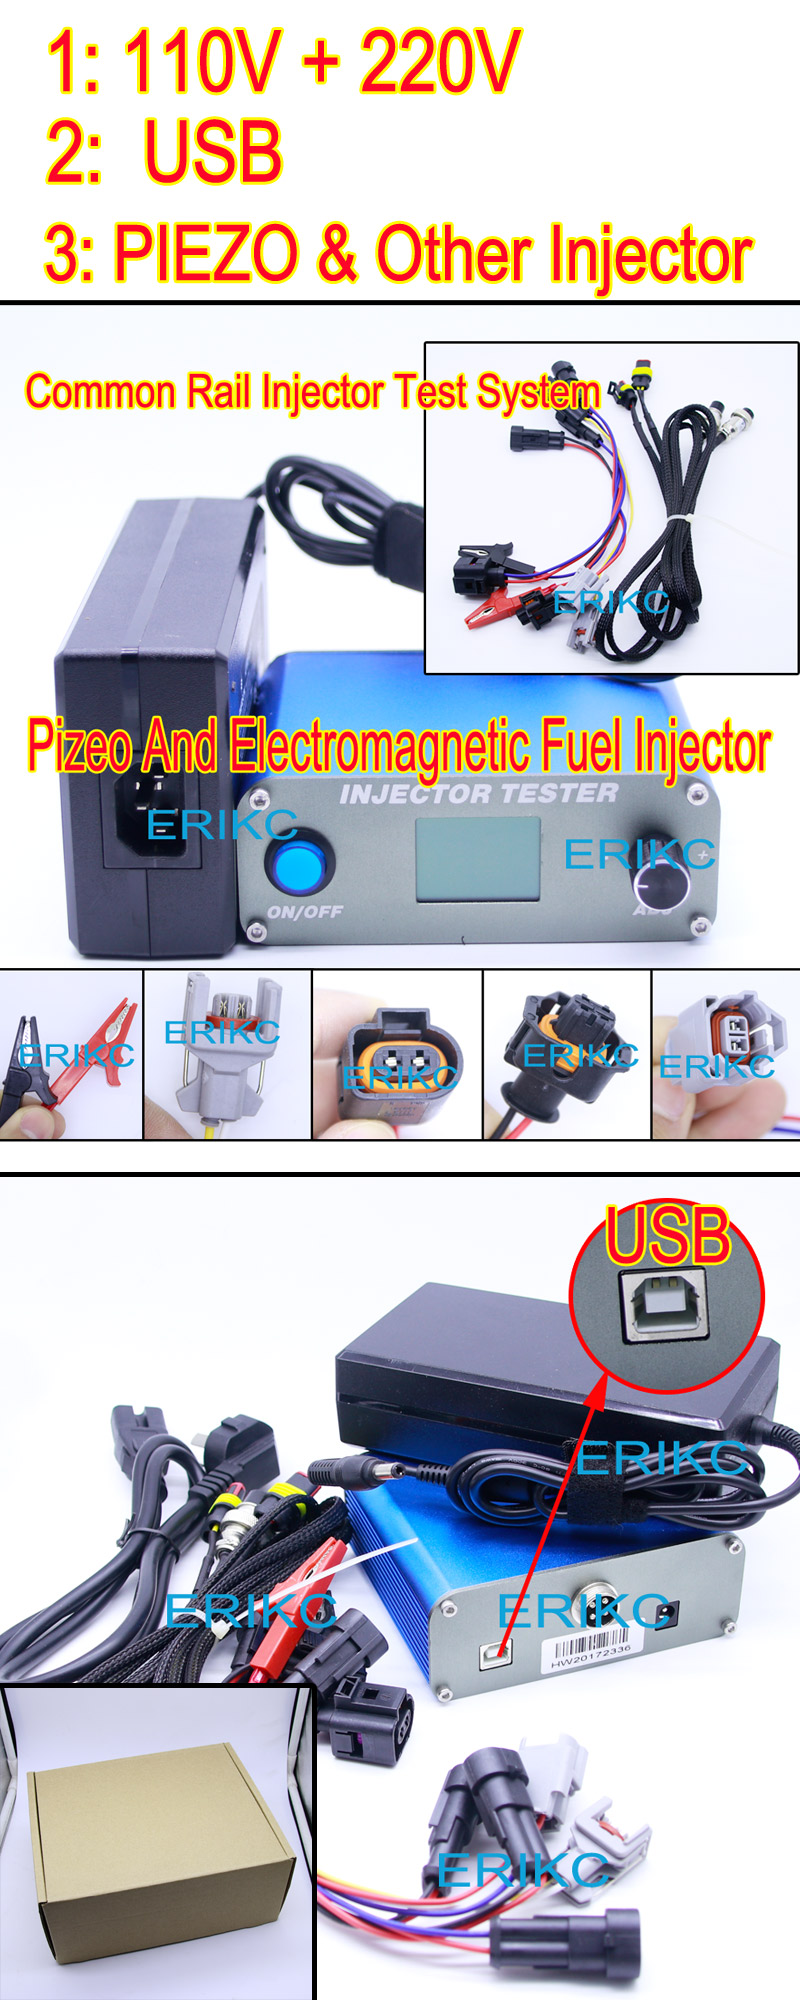 crdi injector tester to test common rail fuel injector / Diesel injector